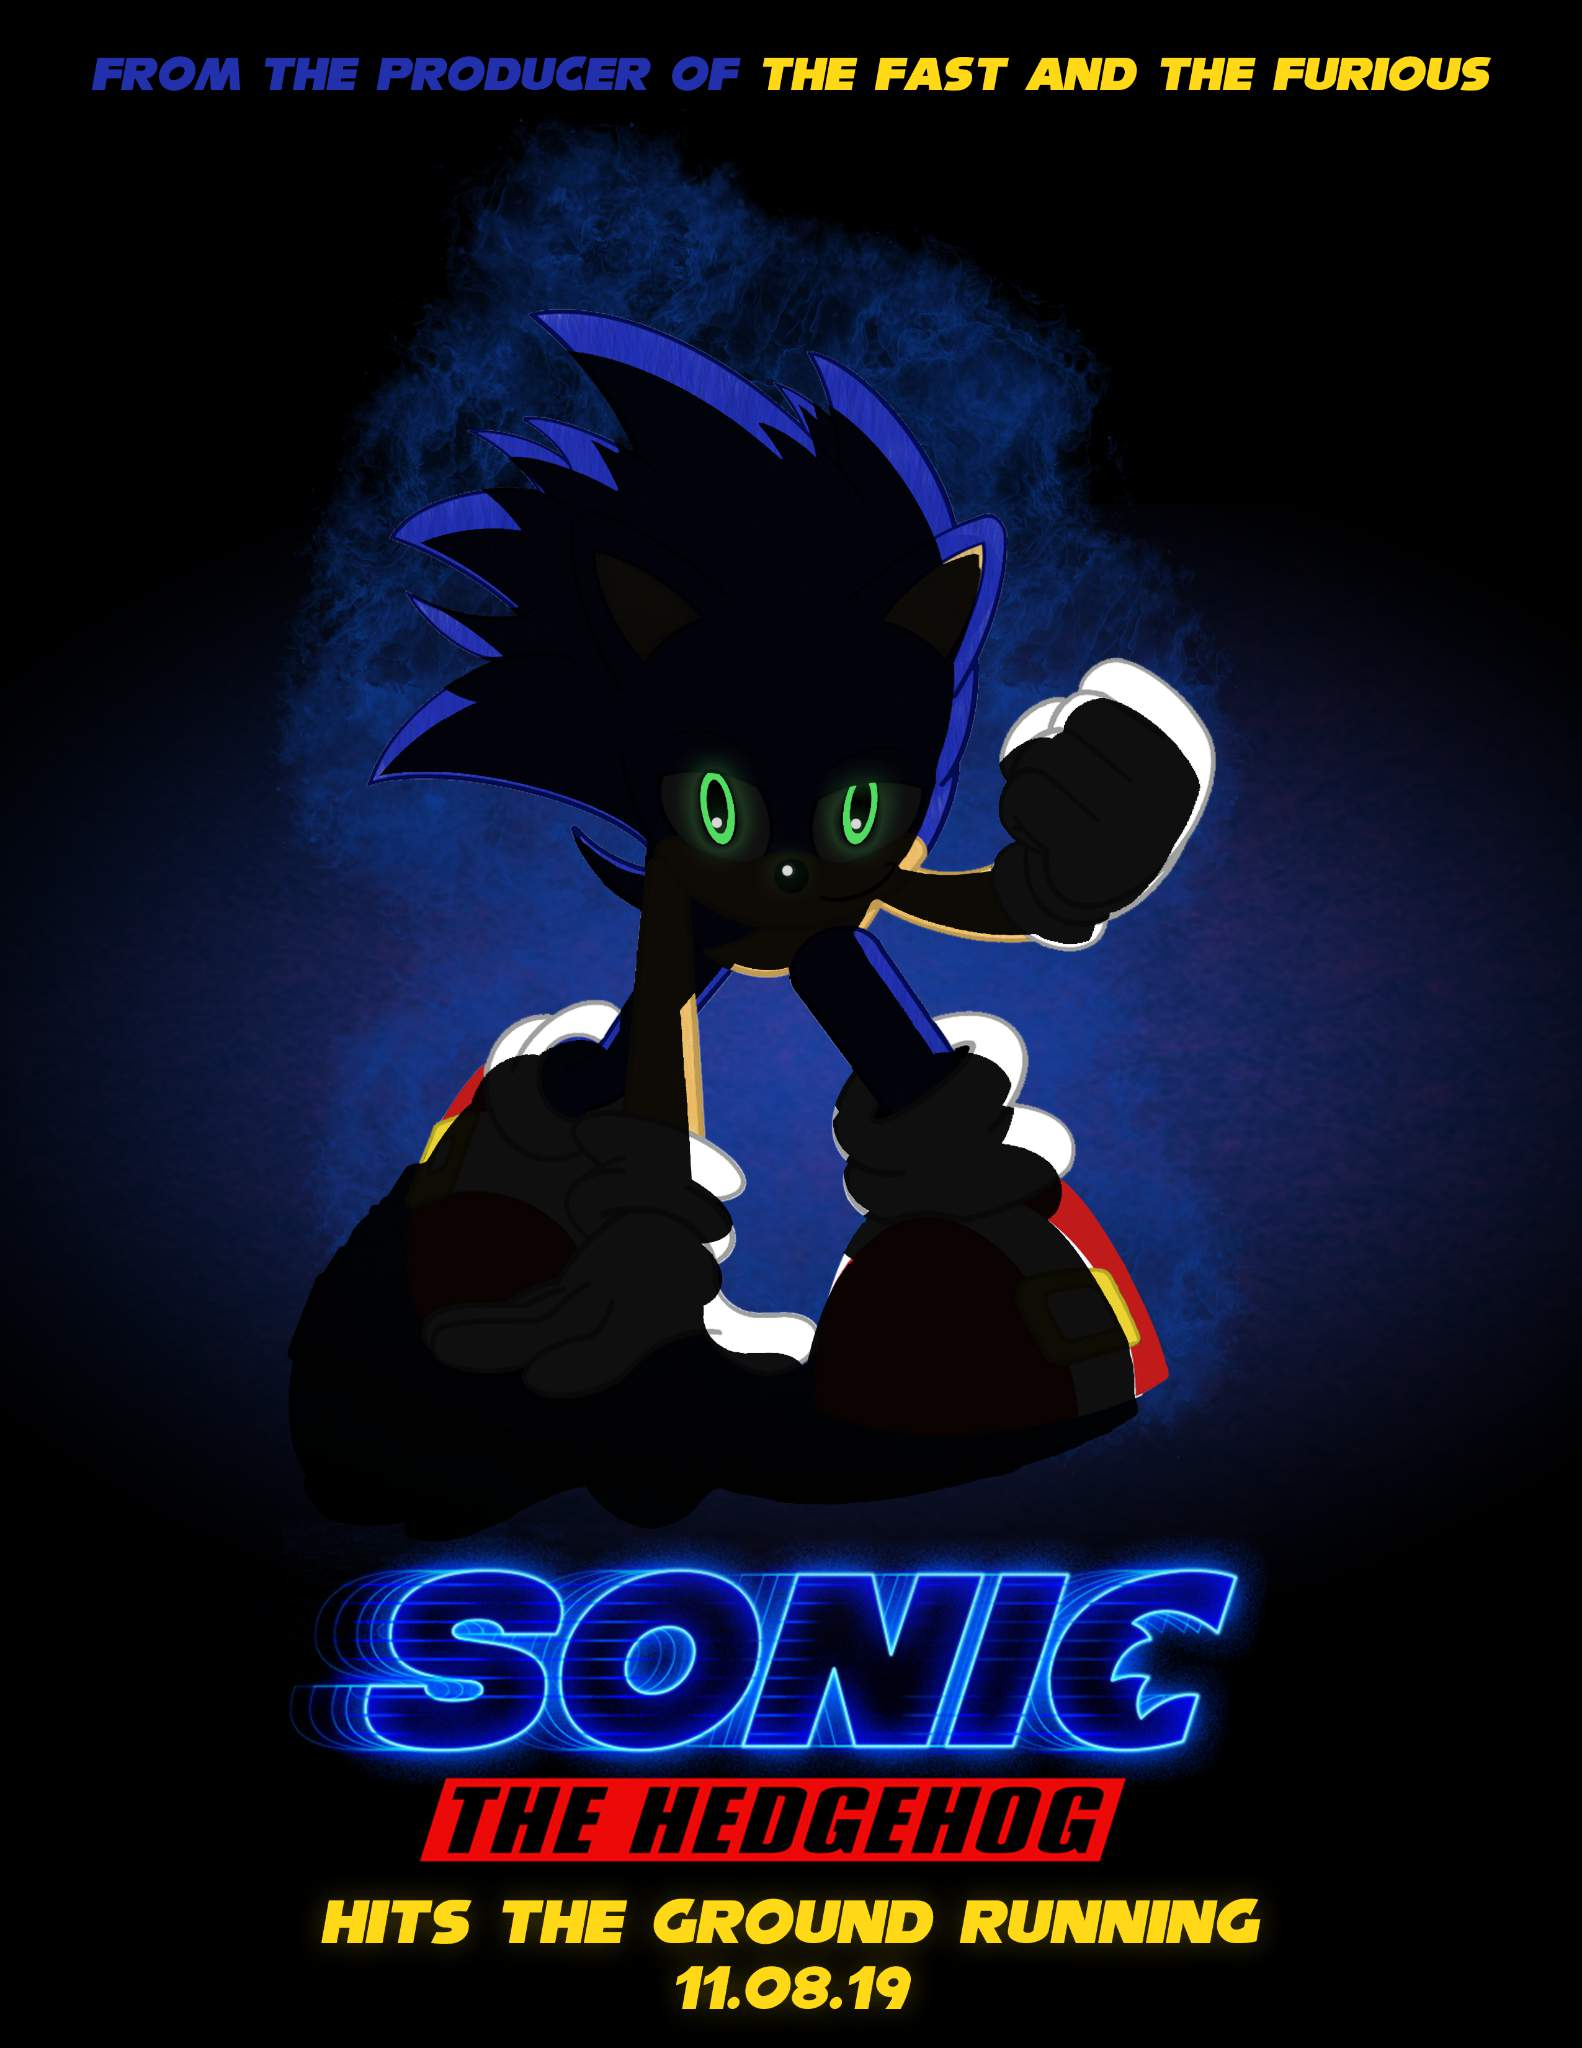 Sonic Movie Poster Remake Sonic The Hedgehog Amino